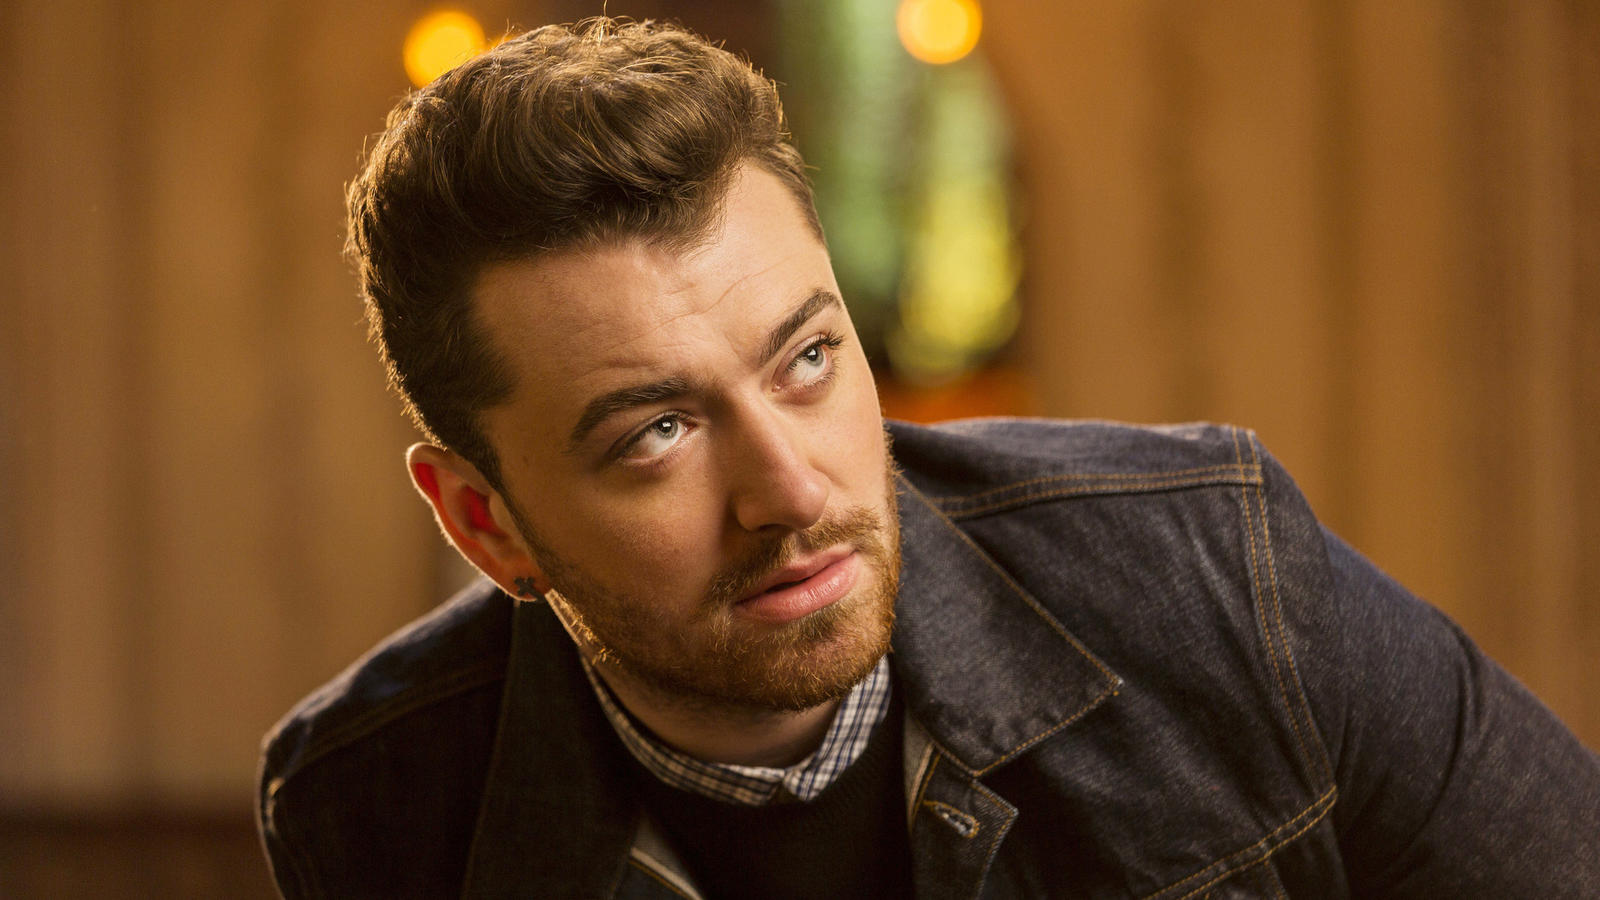 Thrill Of It All Album Sam Smith , HD Wallpaper & Backgrounds